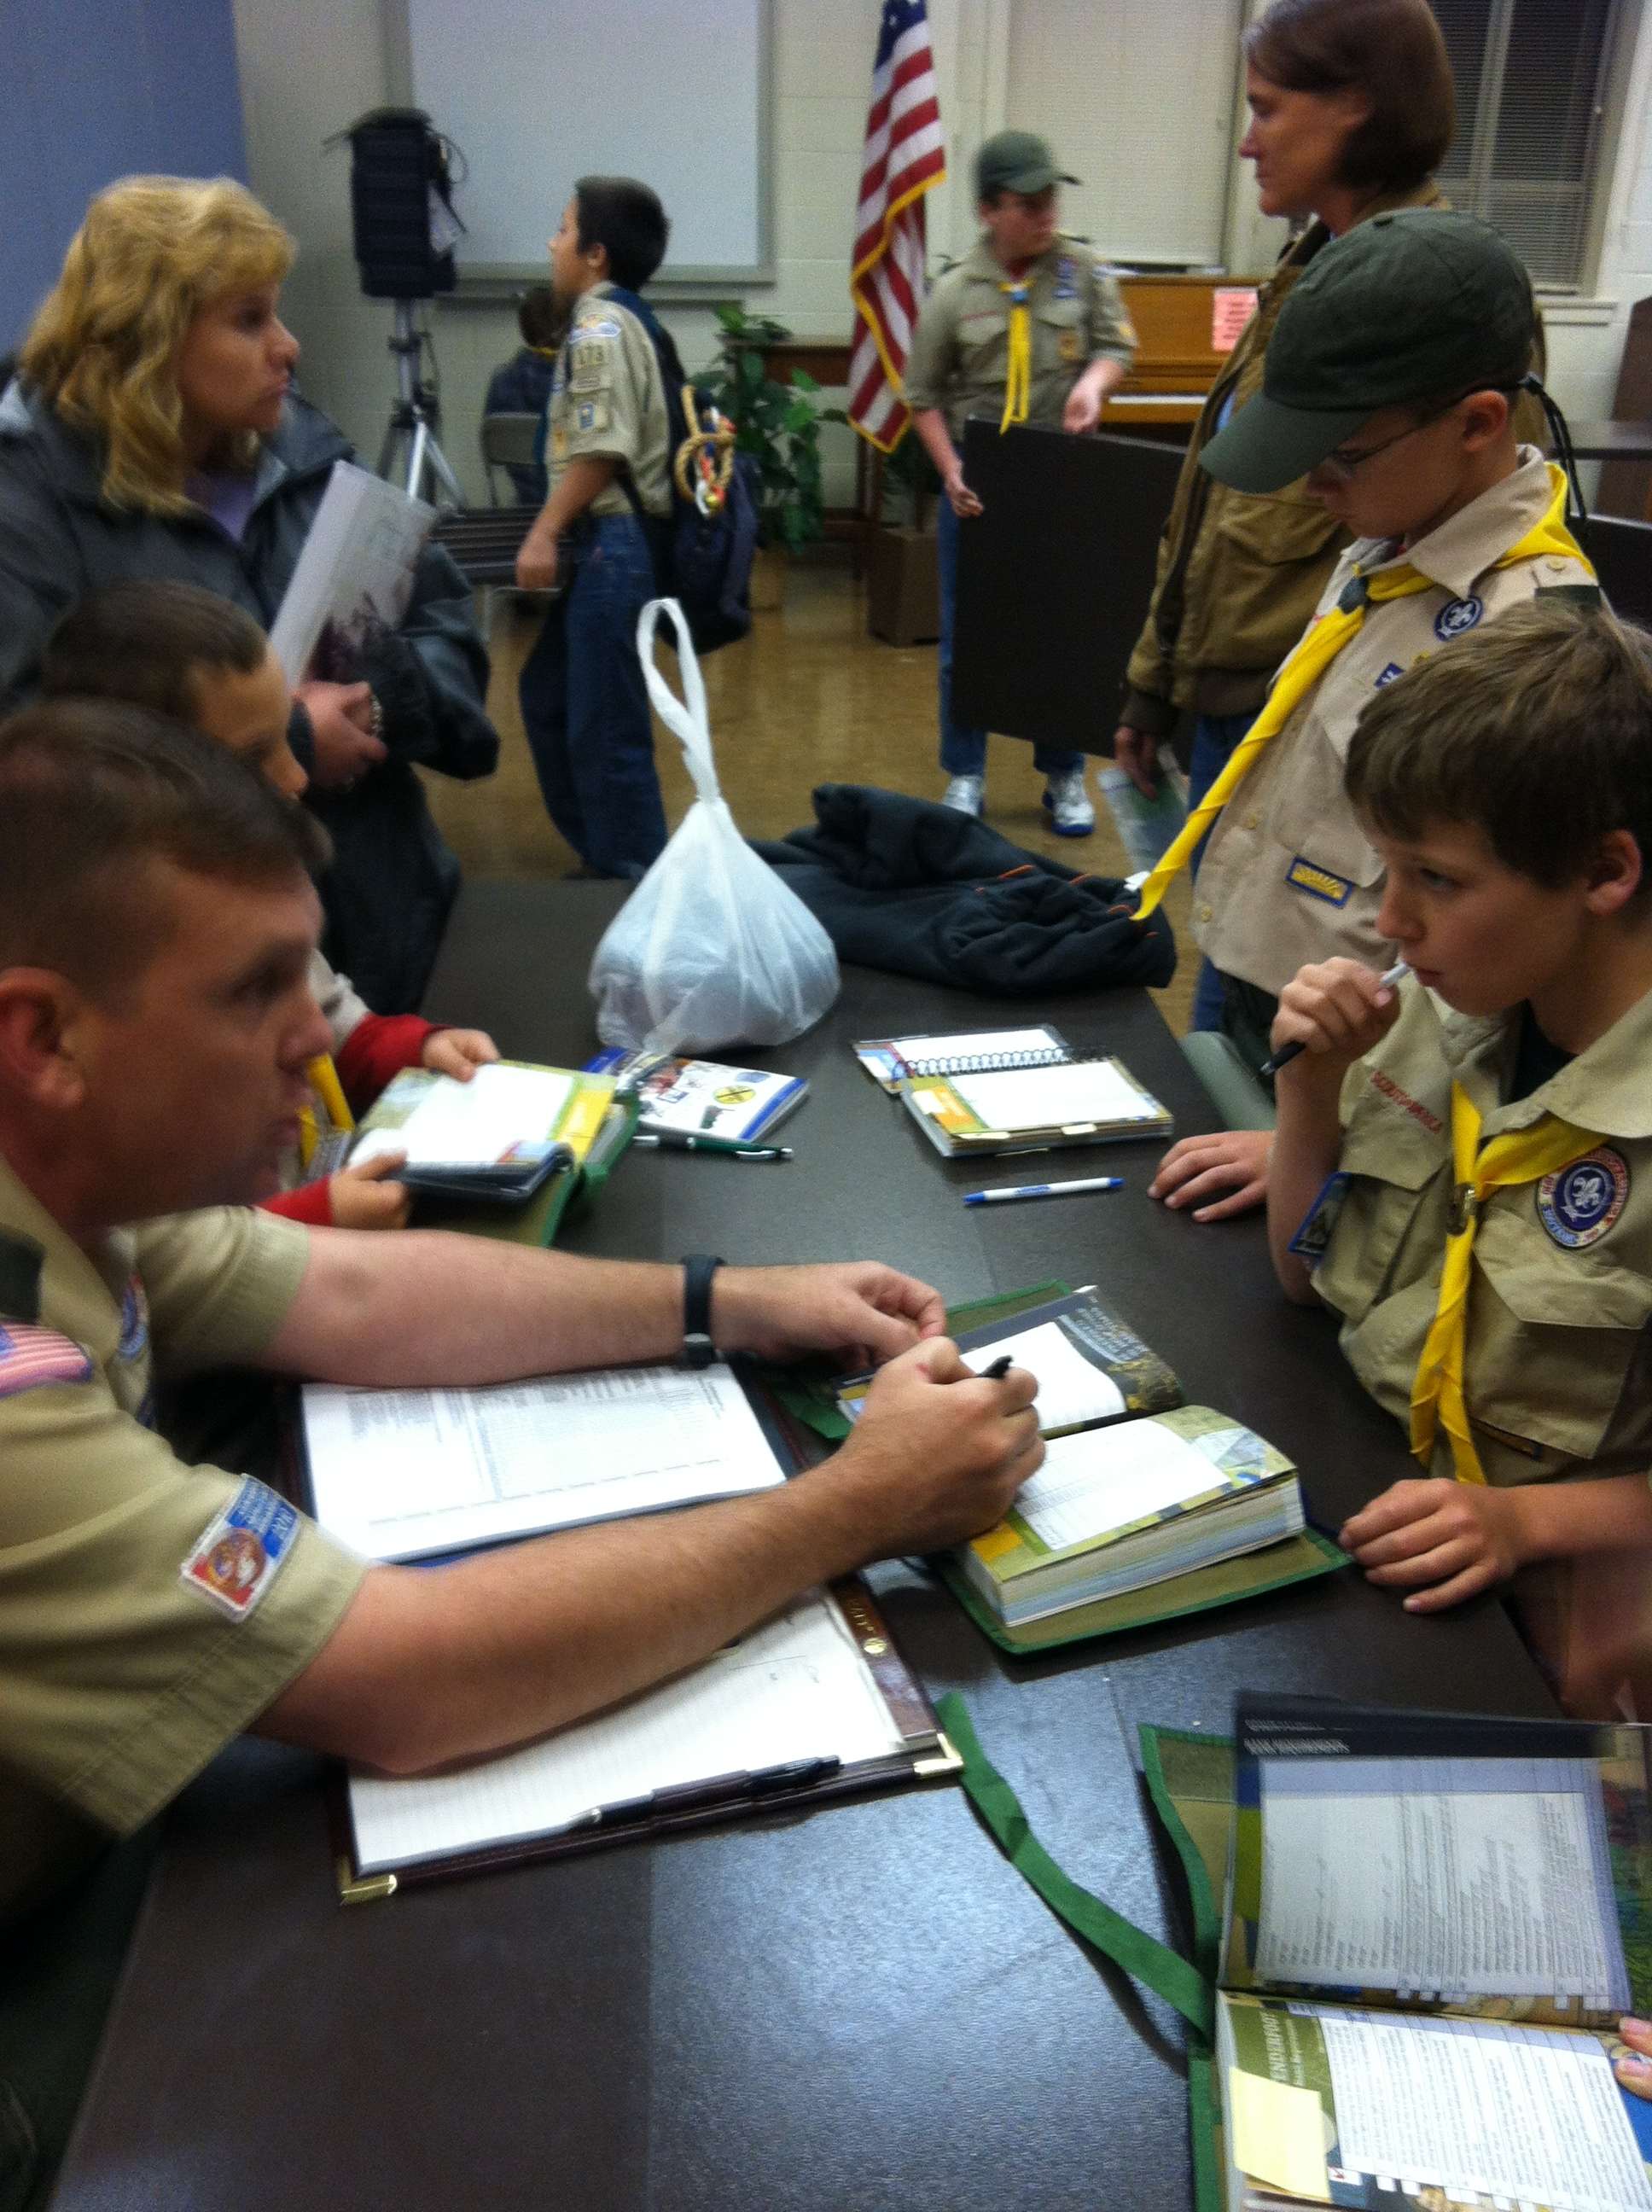 My First Official Boy Scout Meeting